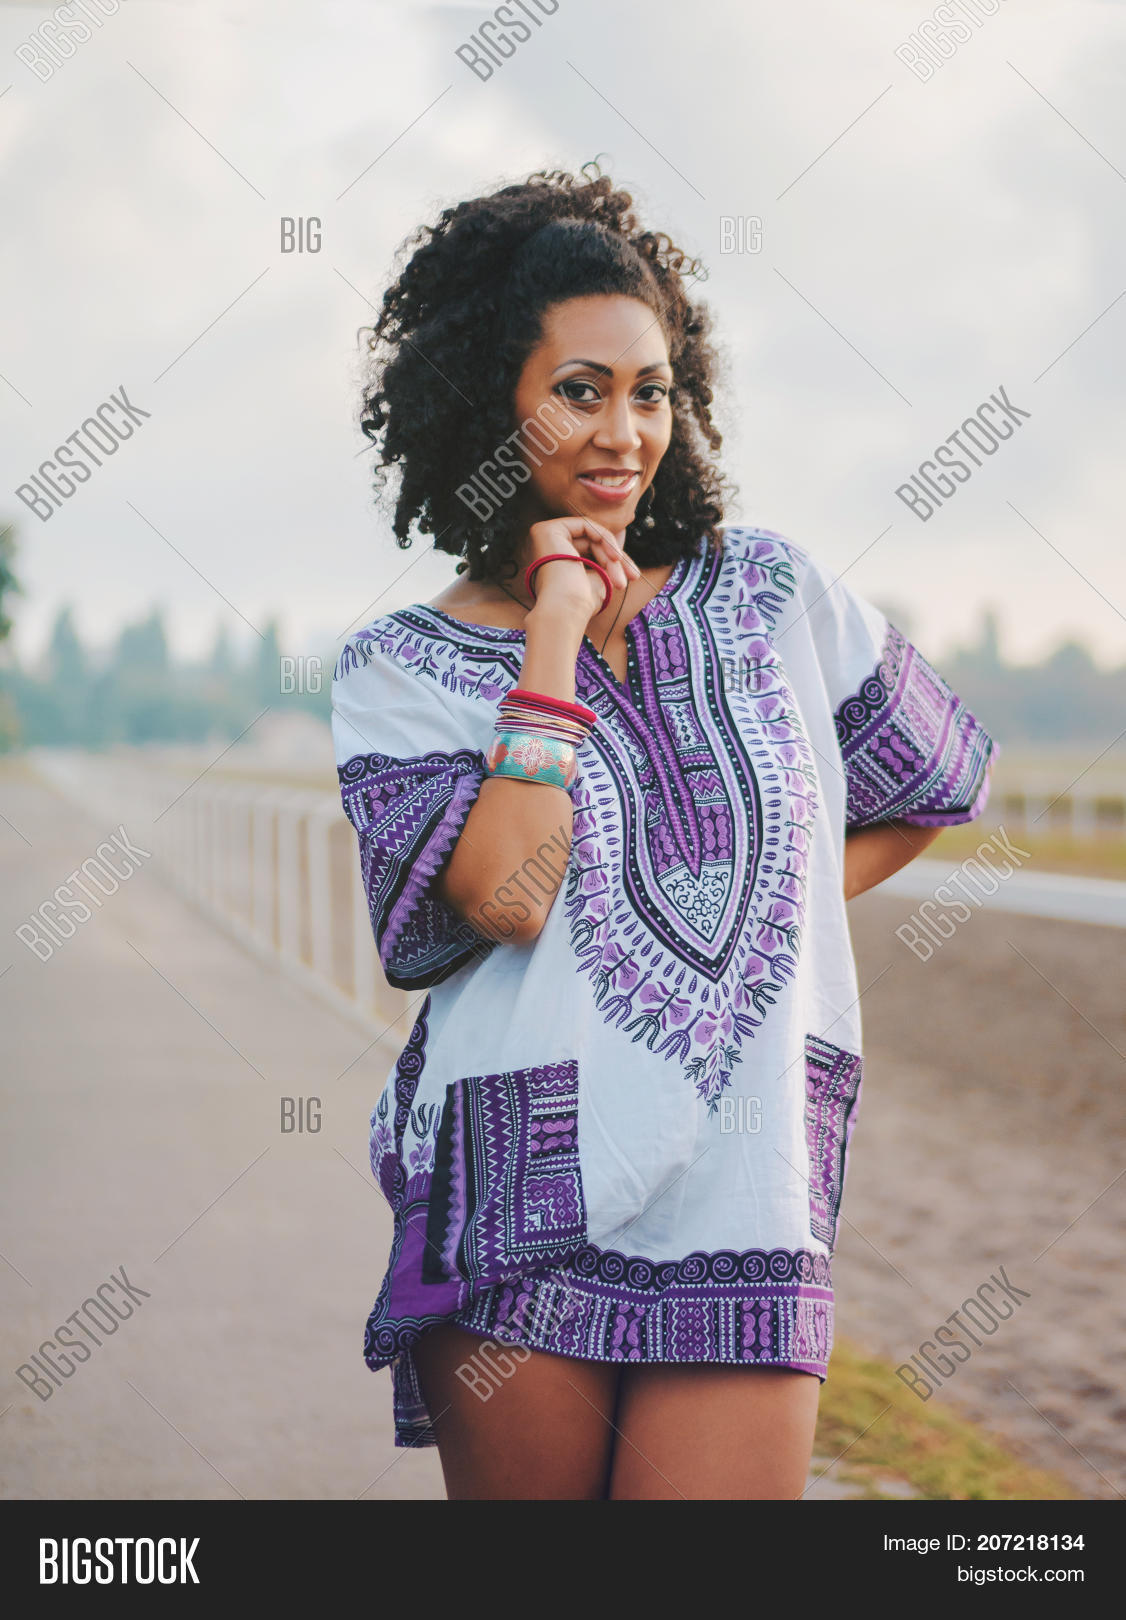 a5a06de025f Happy beautiful afro-american woman outdoor. Young mixed race carefree girl  wearing colorful clothing